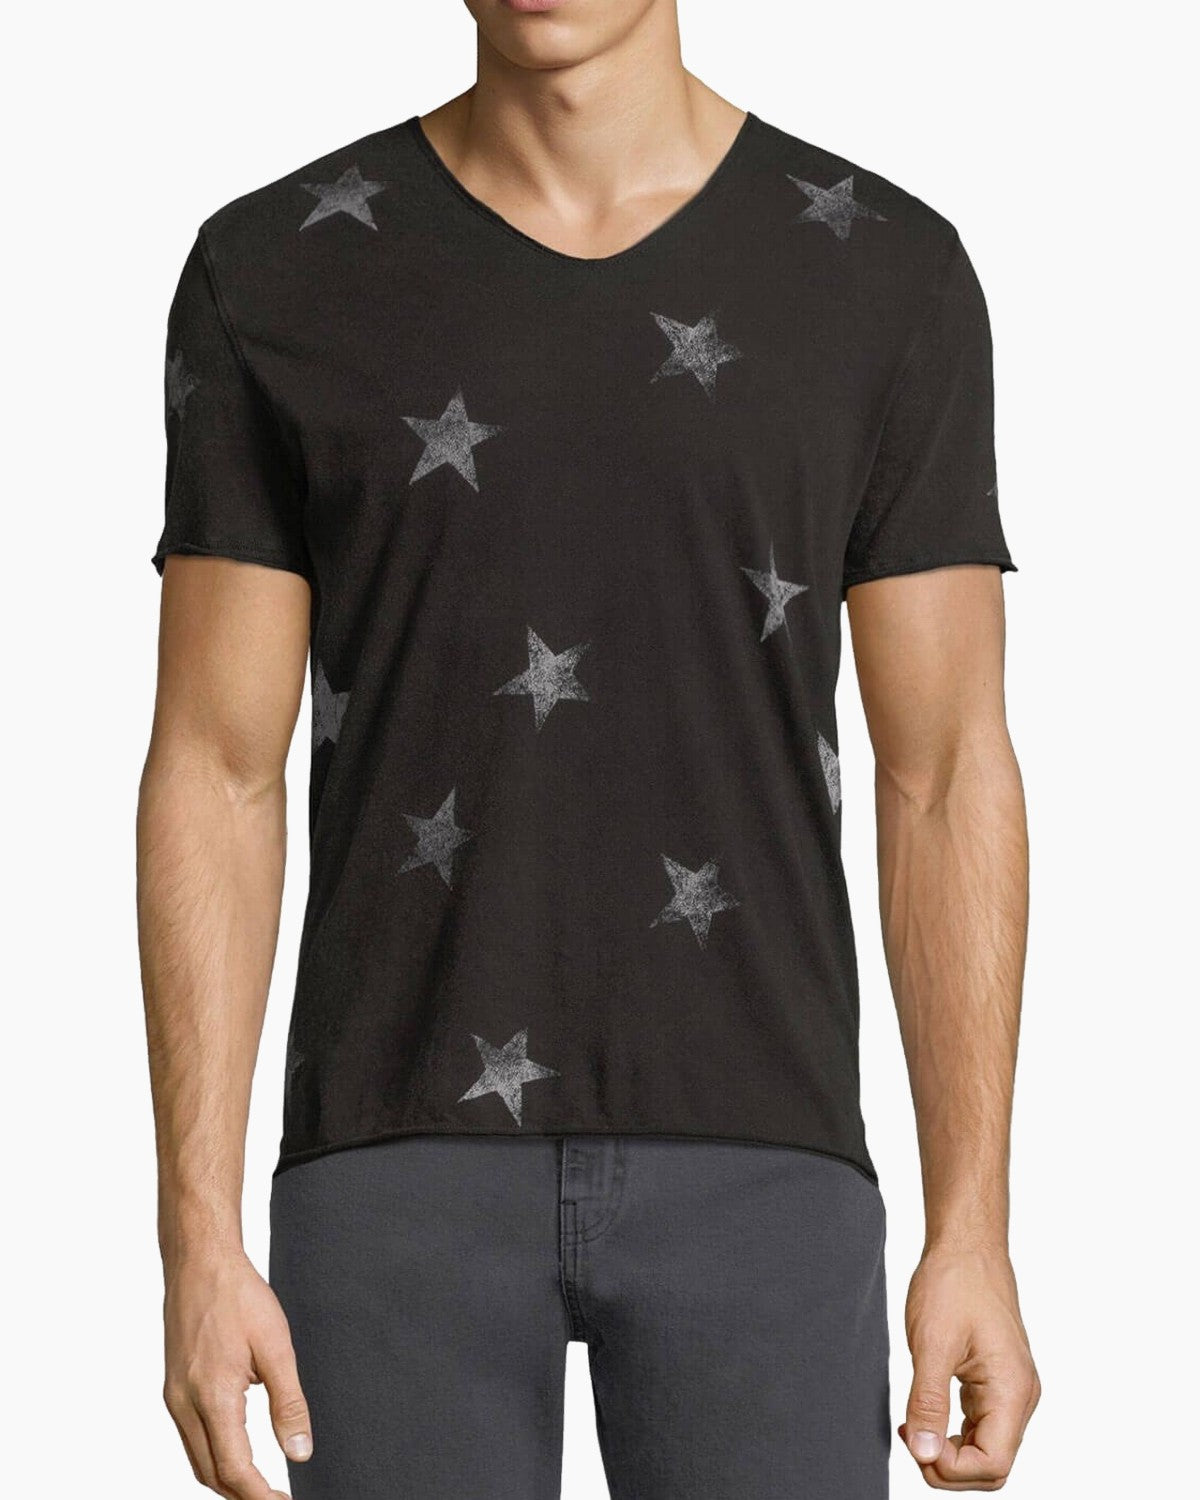 John Varvatos ALL OVER STARS GRAPHIC TEE